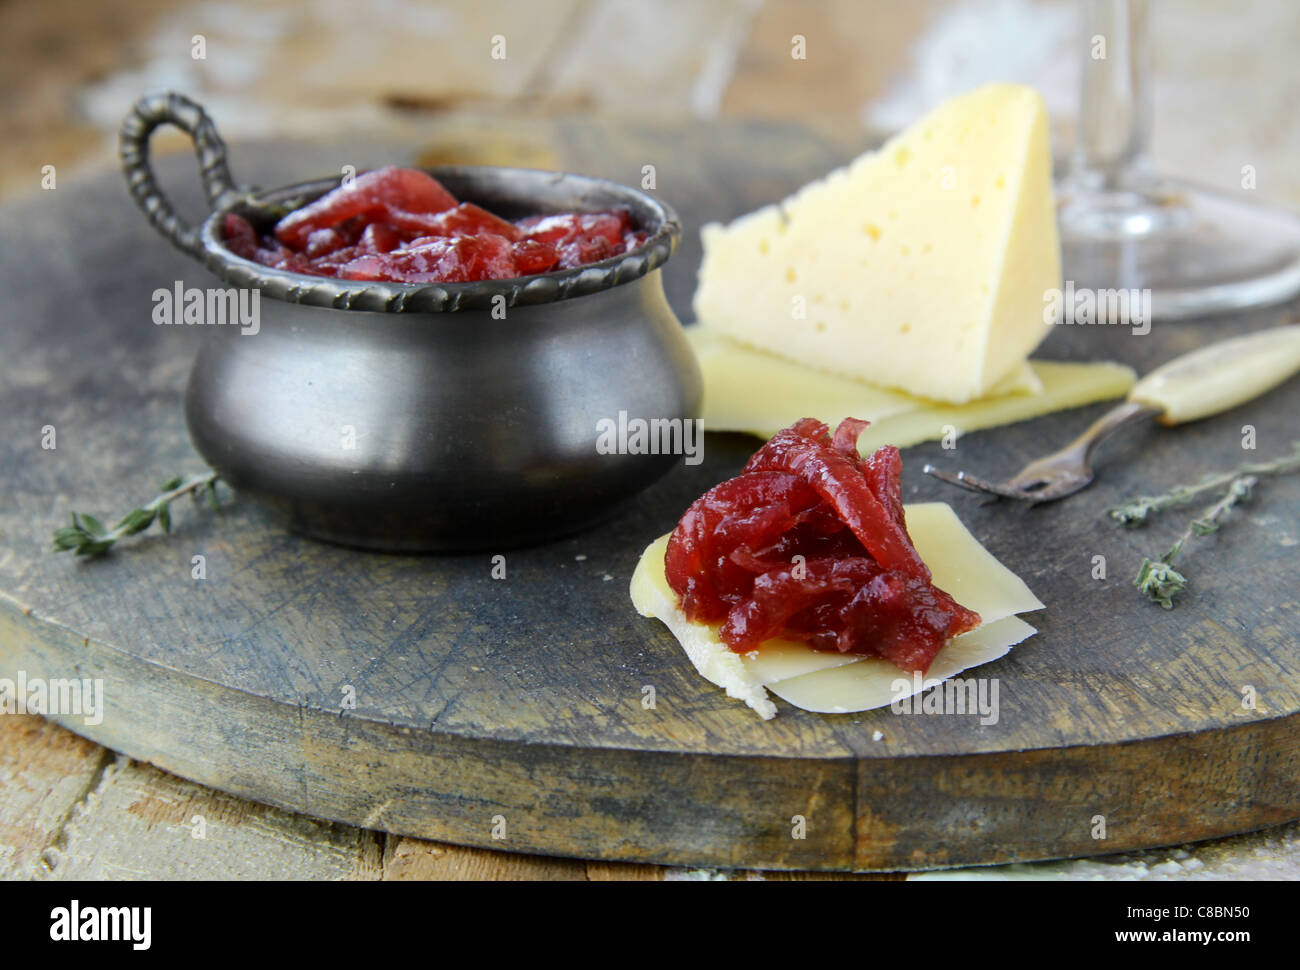 french cuisine - onion confiture on wooden table - Stock Image